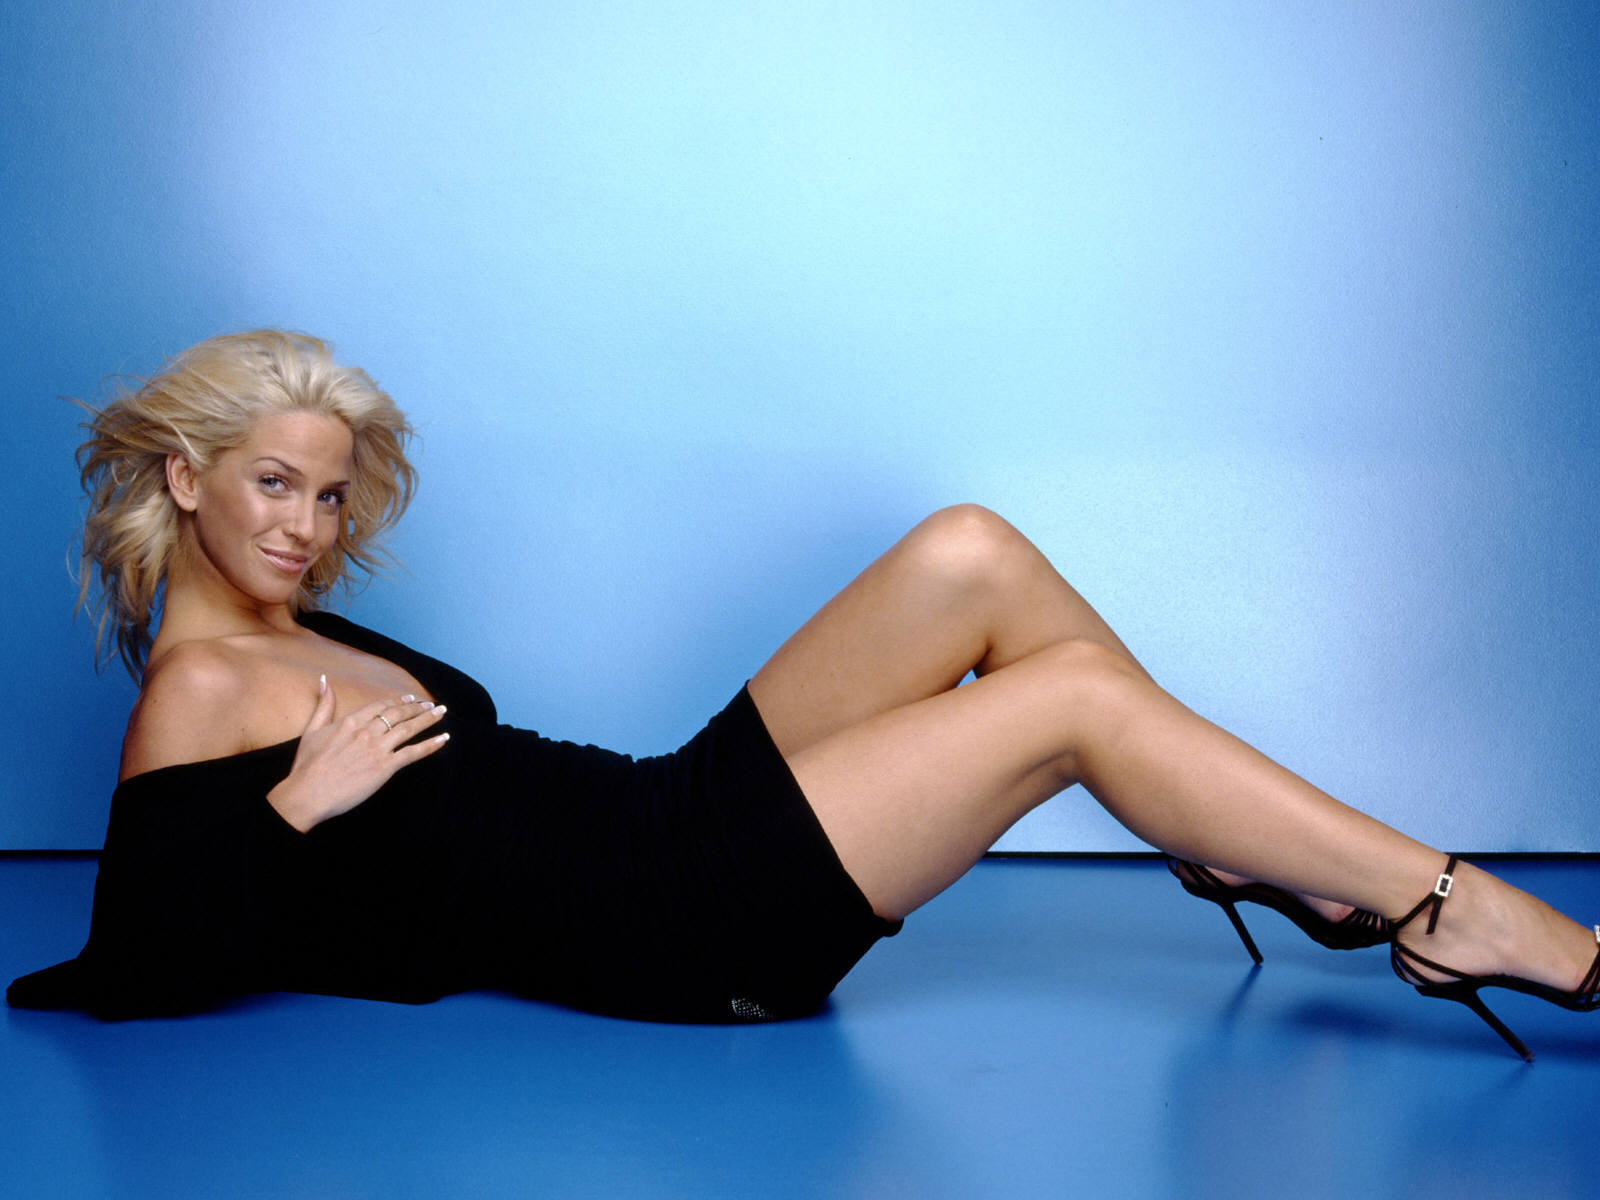 sarah harding new hottest hd wallpaper 2013 hollywood